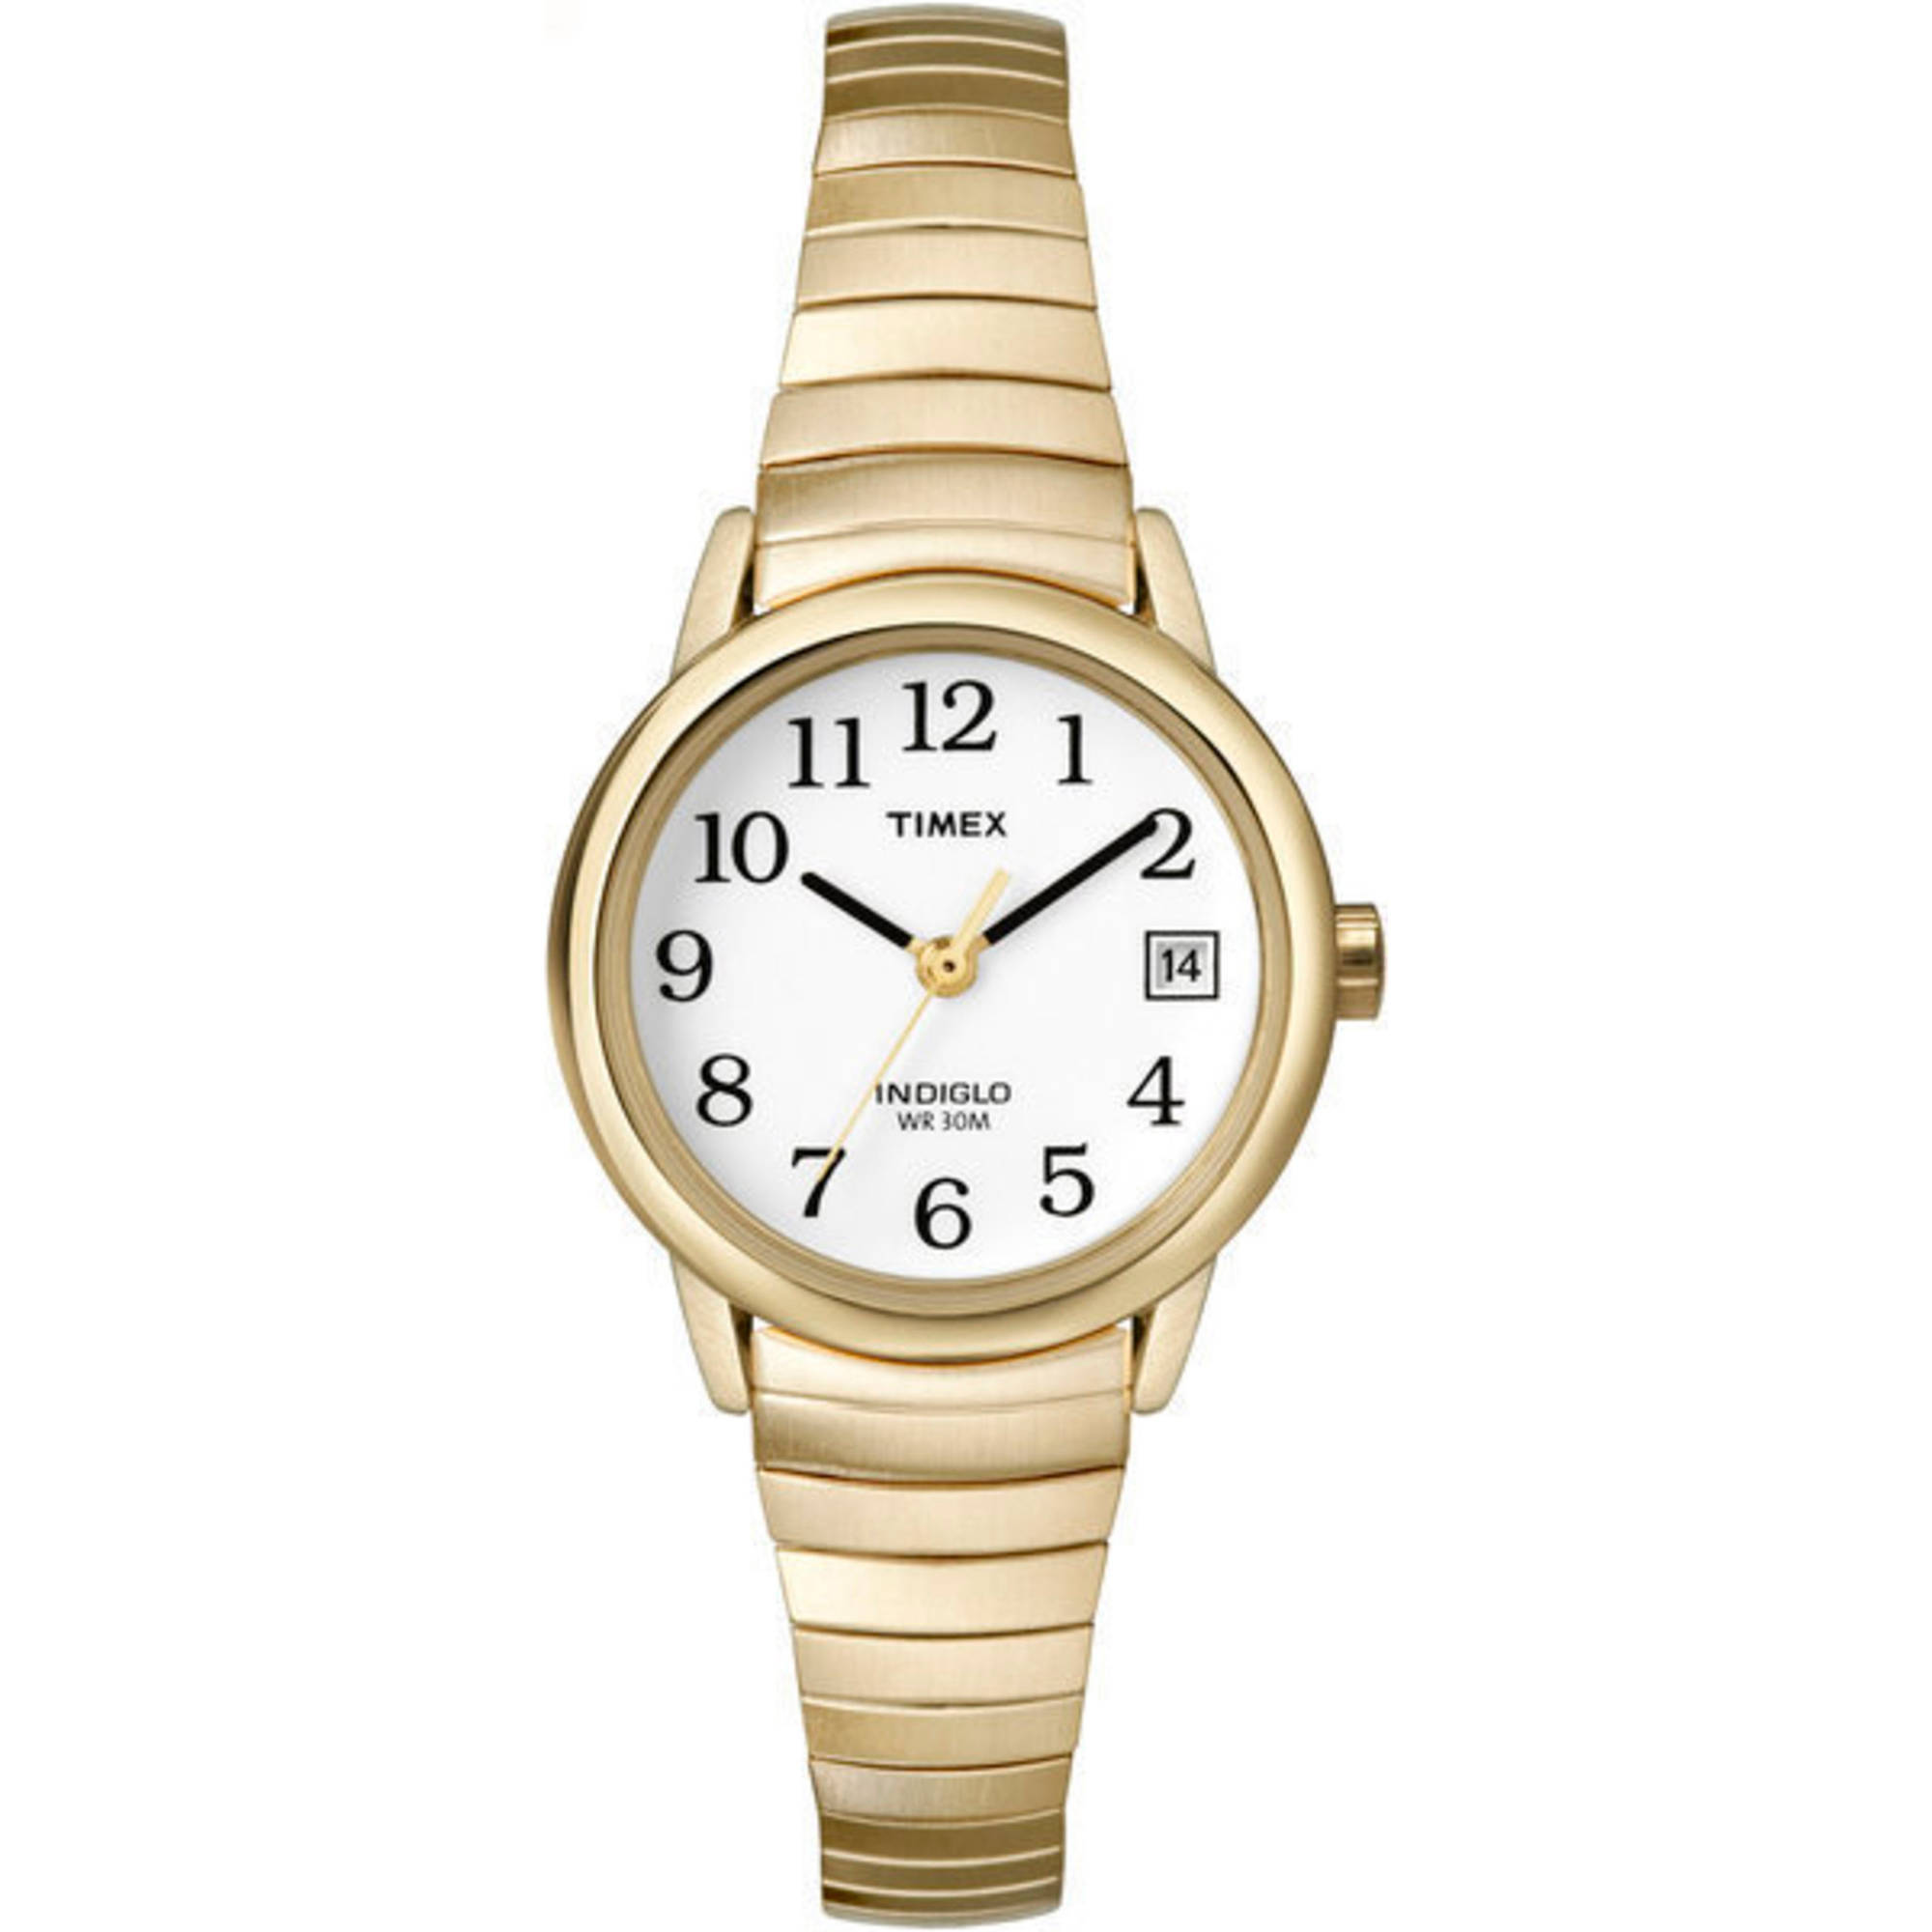 Timex Women's Easy Reader Watch, Gold-Tone Stainless Steel Expansion Band by Timex